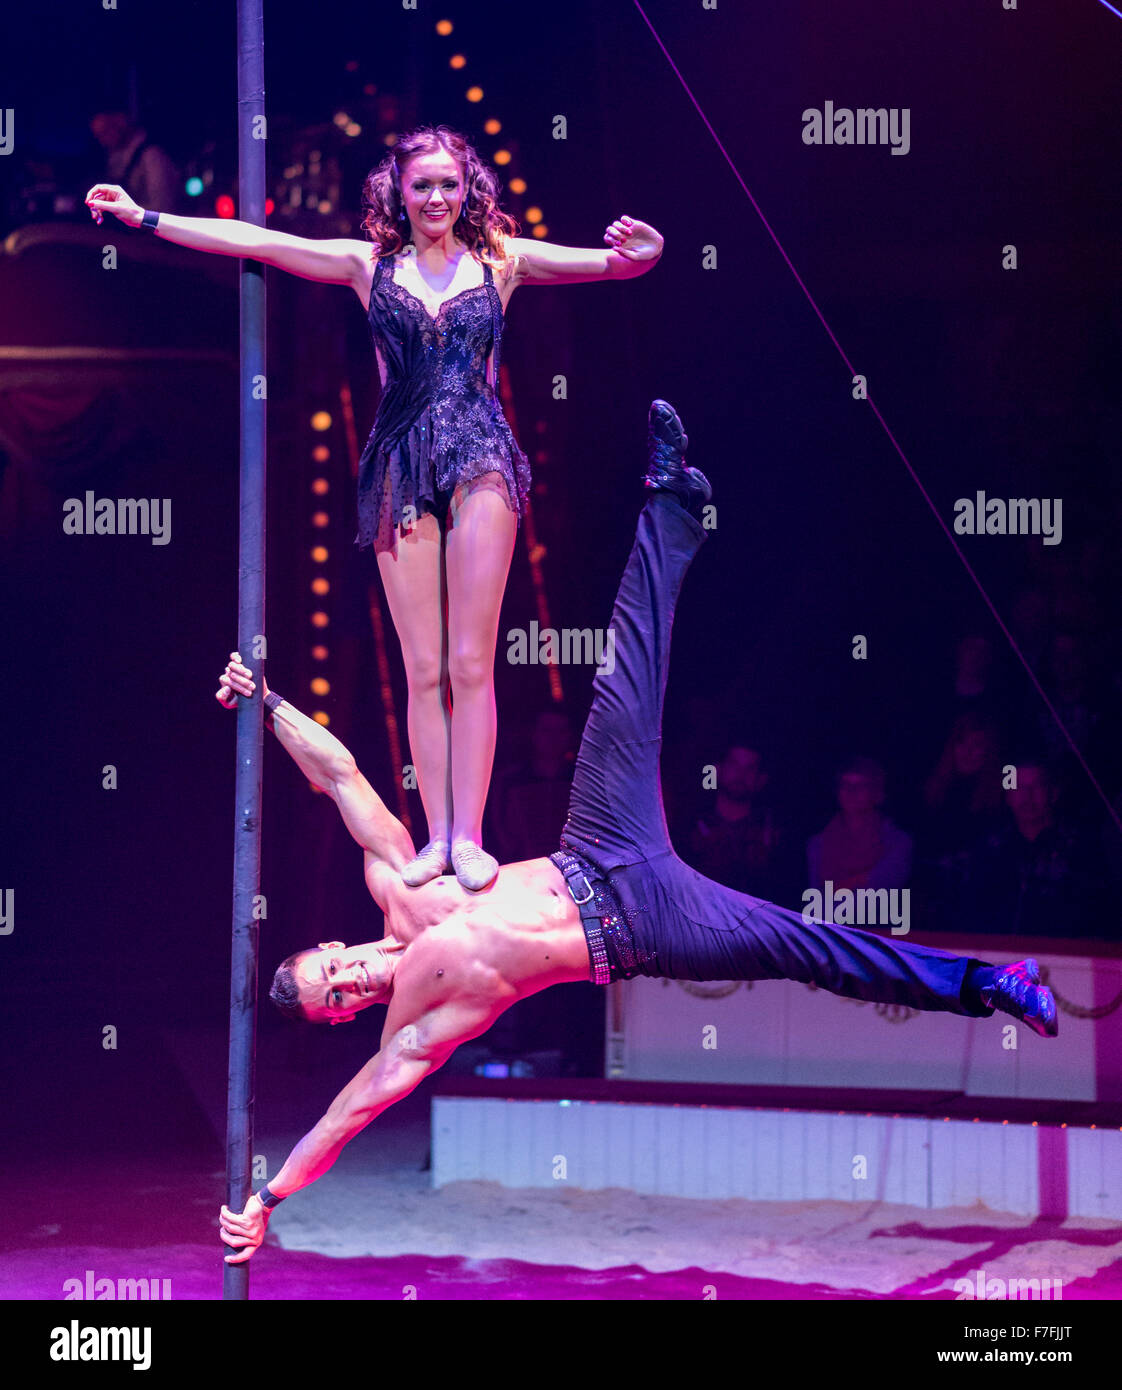 Artists of the Roncalli Circus (Duo Real) perform their show 'Salto Vitale'. - Stock Image